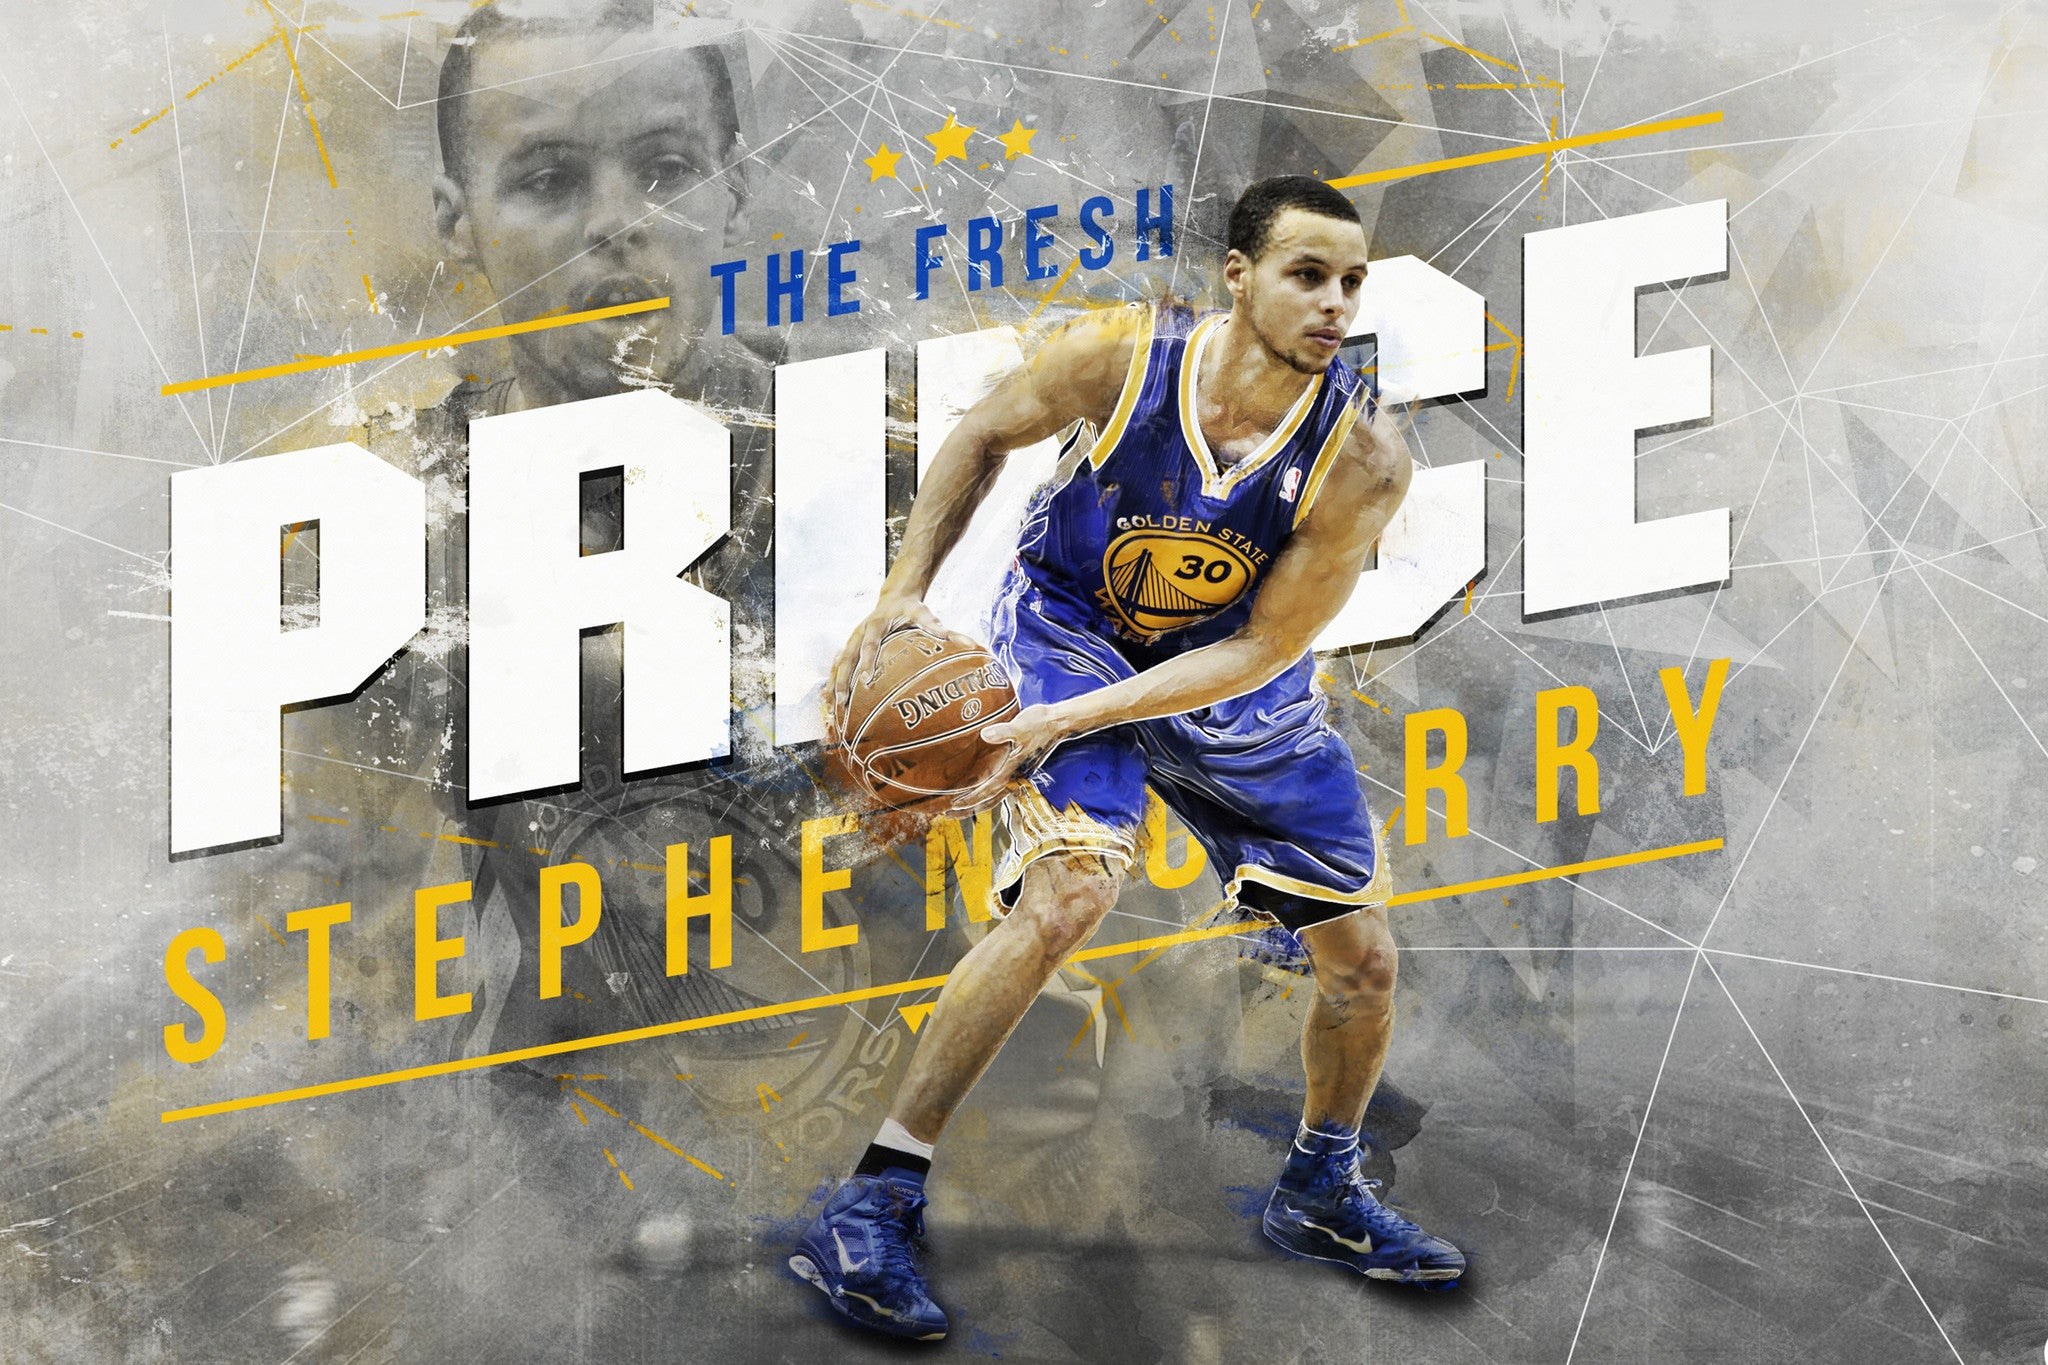 stephen curry - the fresh prince - golden state warriors nba 12x18